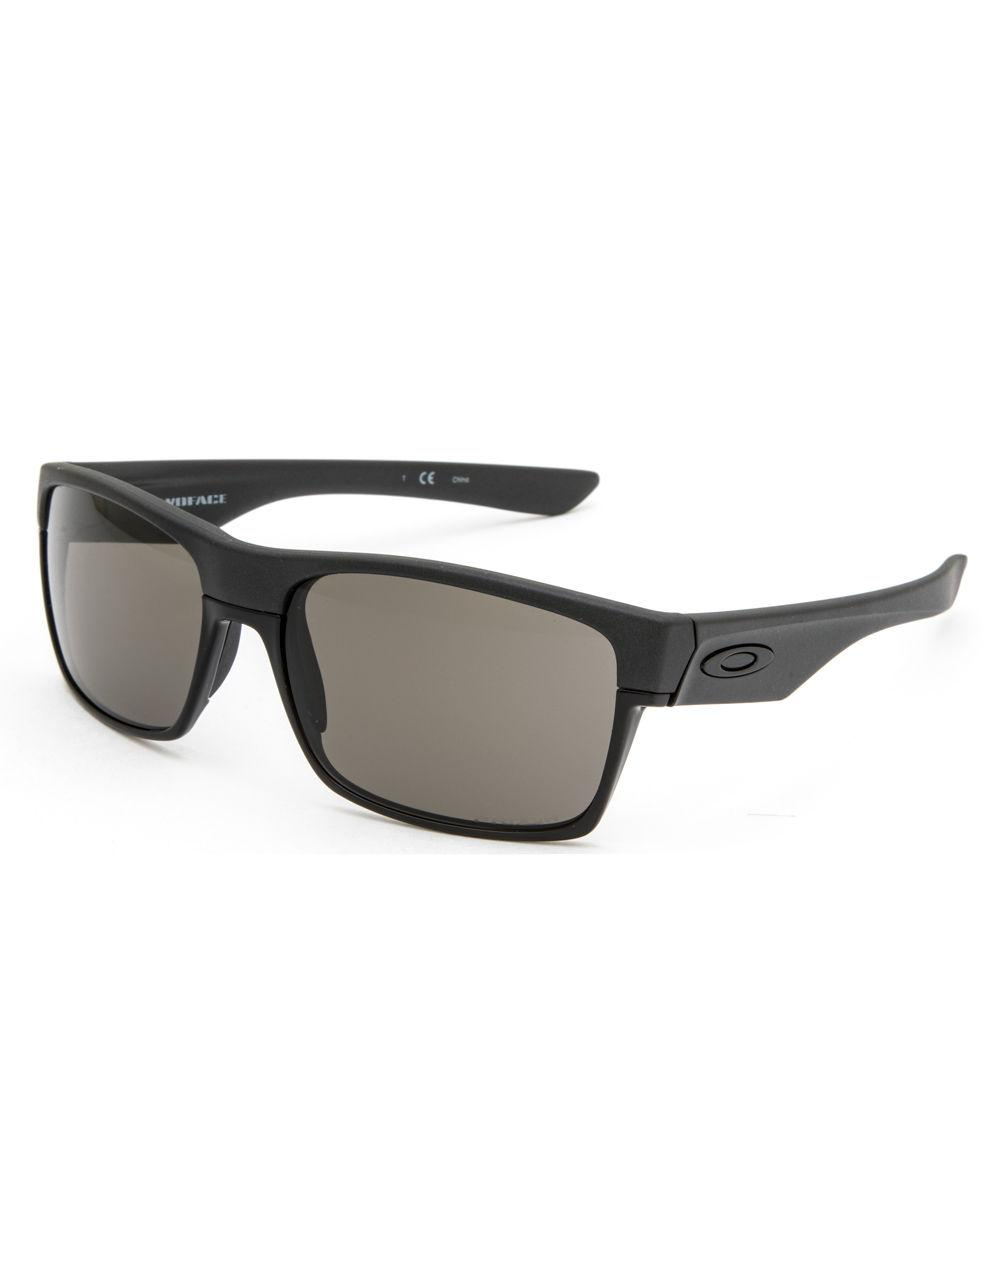 f0ad9c9d0a Lyst - Oakley Twoface Steel   Prizm Gray Sunglasses in Black for Men